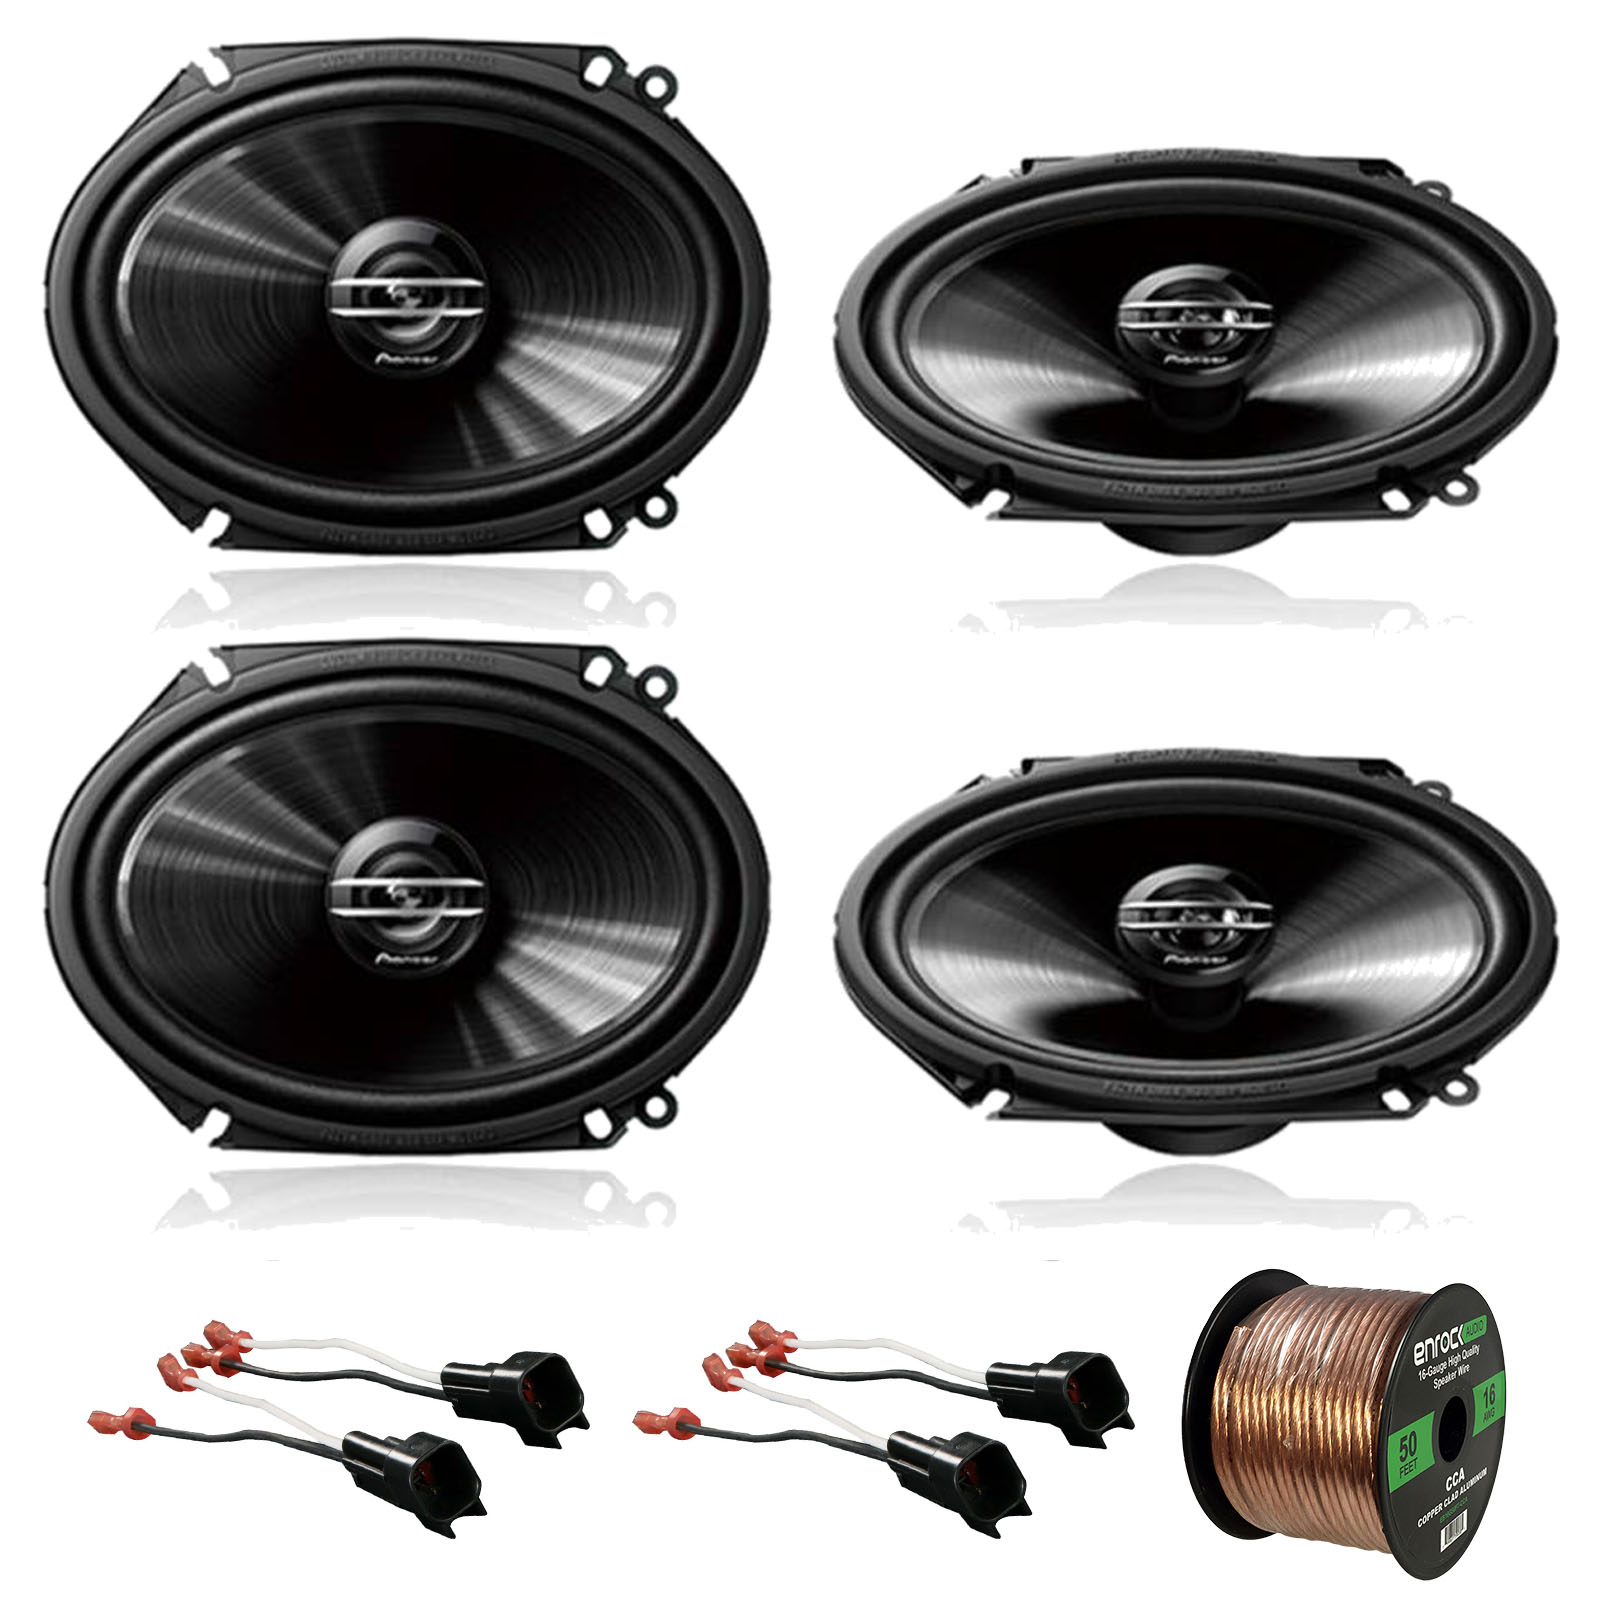 "2 x Pioneer TS-G6820S 250W 6x8"" 2-Way Car Audio Speakers (2 pairs), 2 x Metra 72-5600 Speaker Adapter for Select Ford Vehicles (2 pairs), Enrock Audio 16-Gauge 50 Foot Speaker Wire"